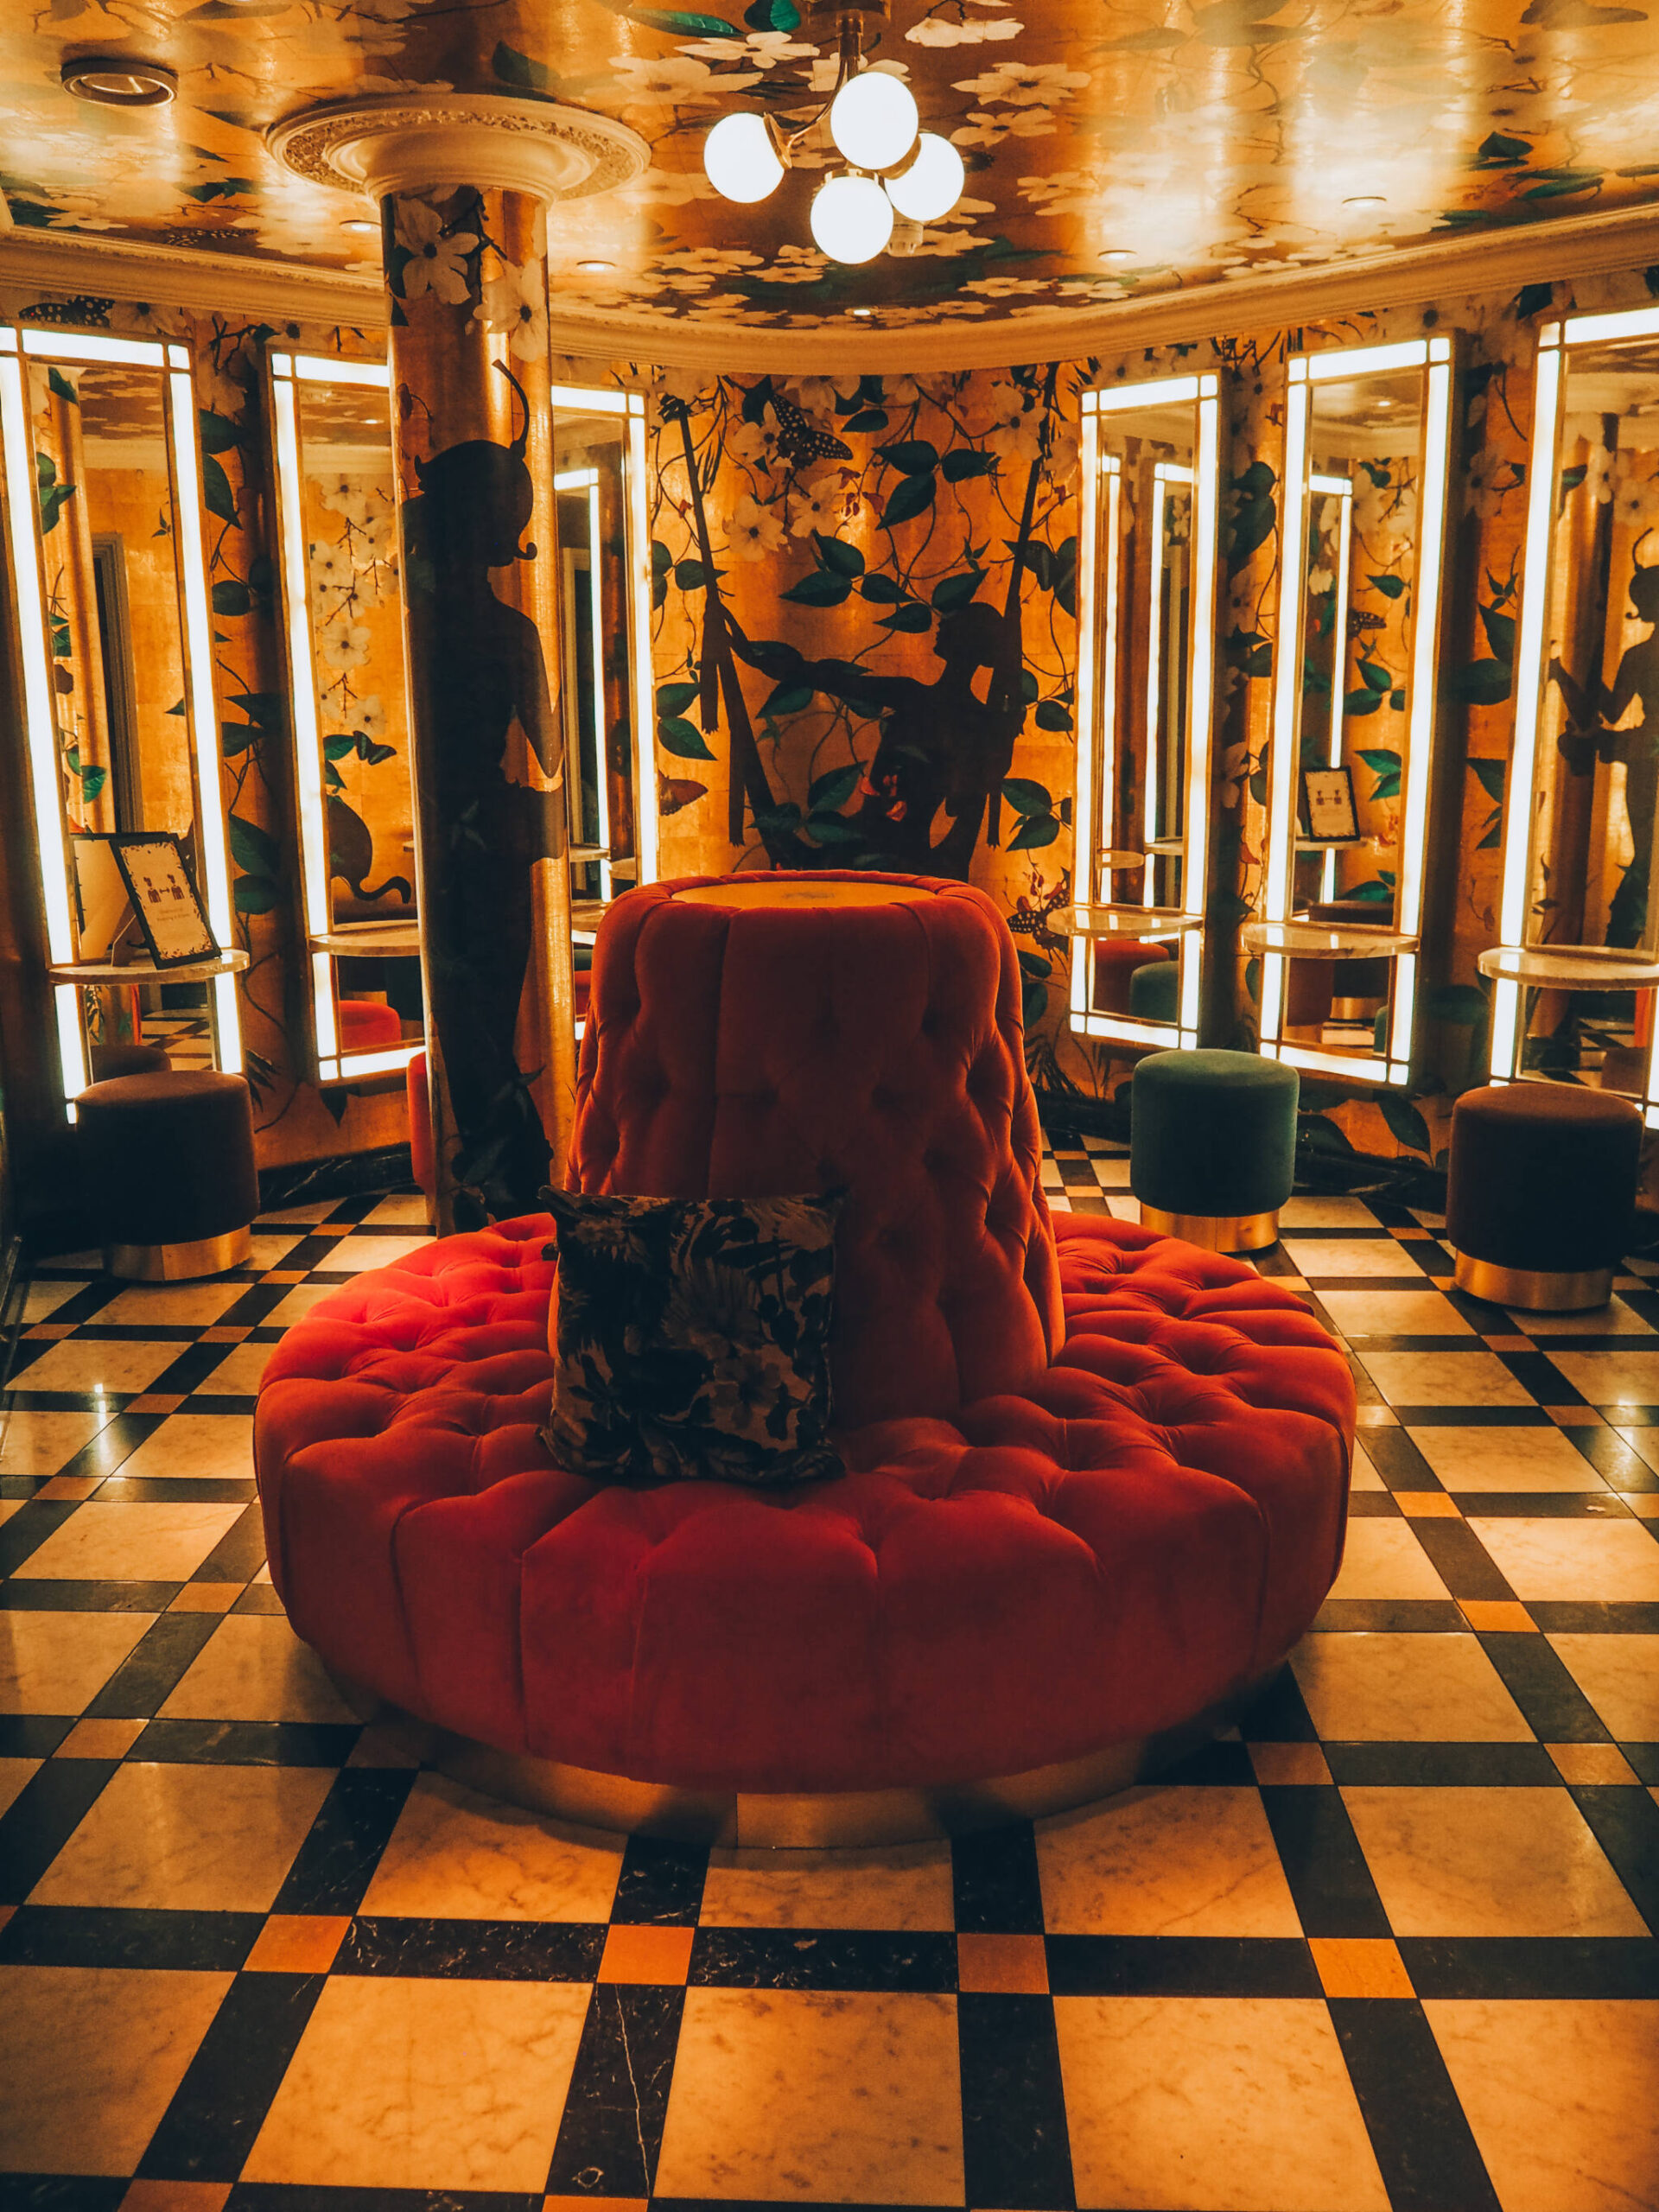 The Ivy bathroom with dressing room mirrors, lights and stalls and cushioned round chair in the middle